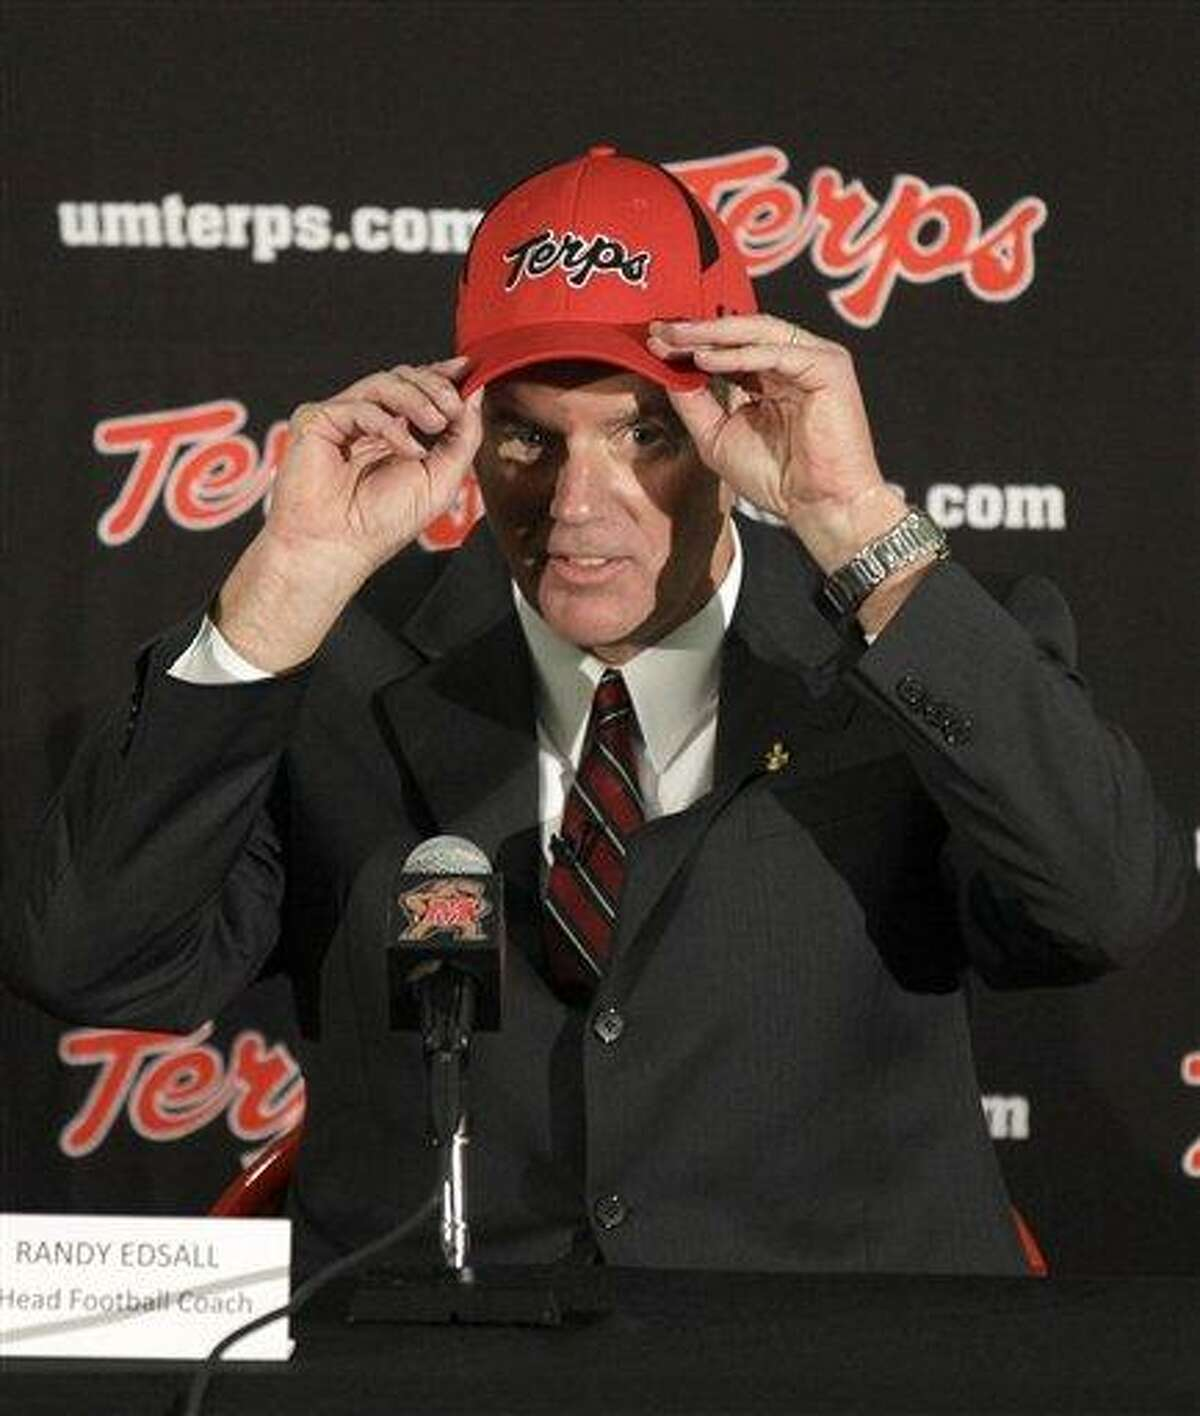 Randy Edsall puts on a University of Maryland hat after being introduced as the new head football coach at the school during a news conference, Monday, Jan. 3, 2011, in College Park, Md. (AP Photo/Rob Carr)